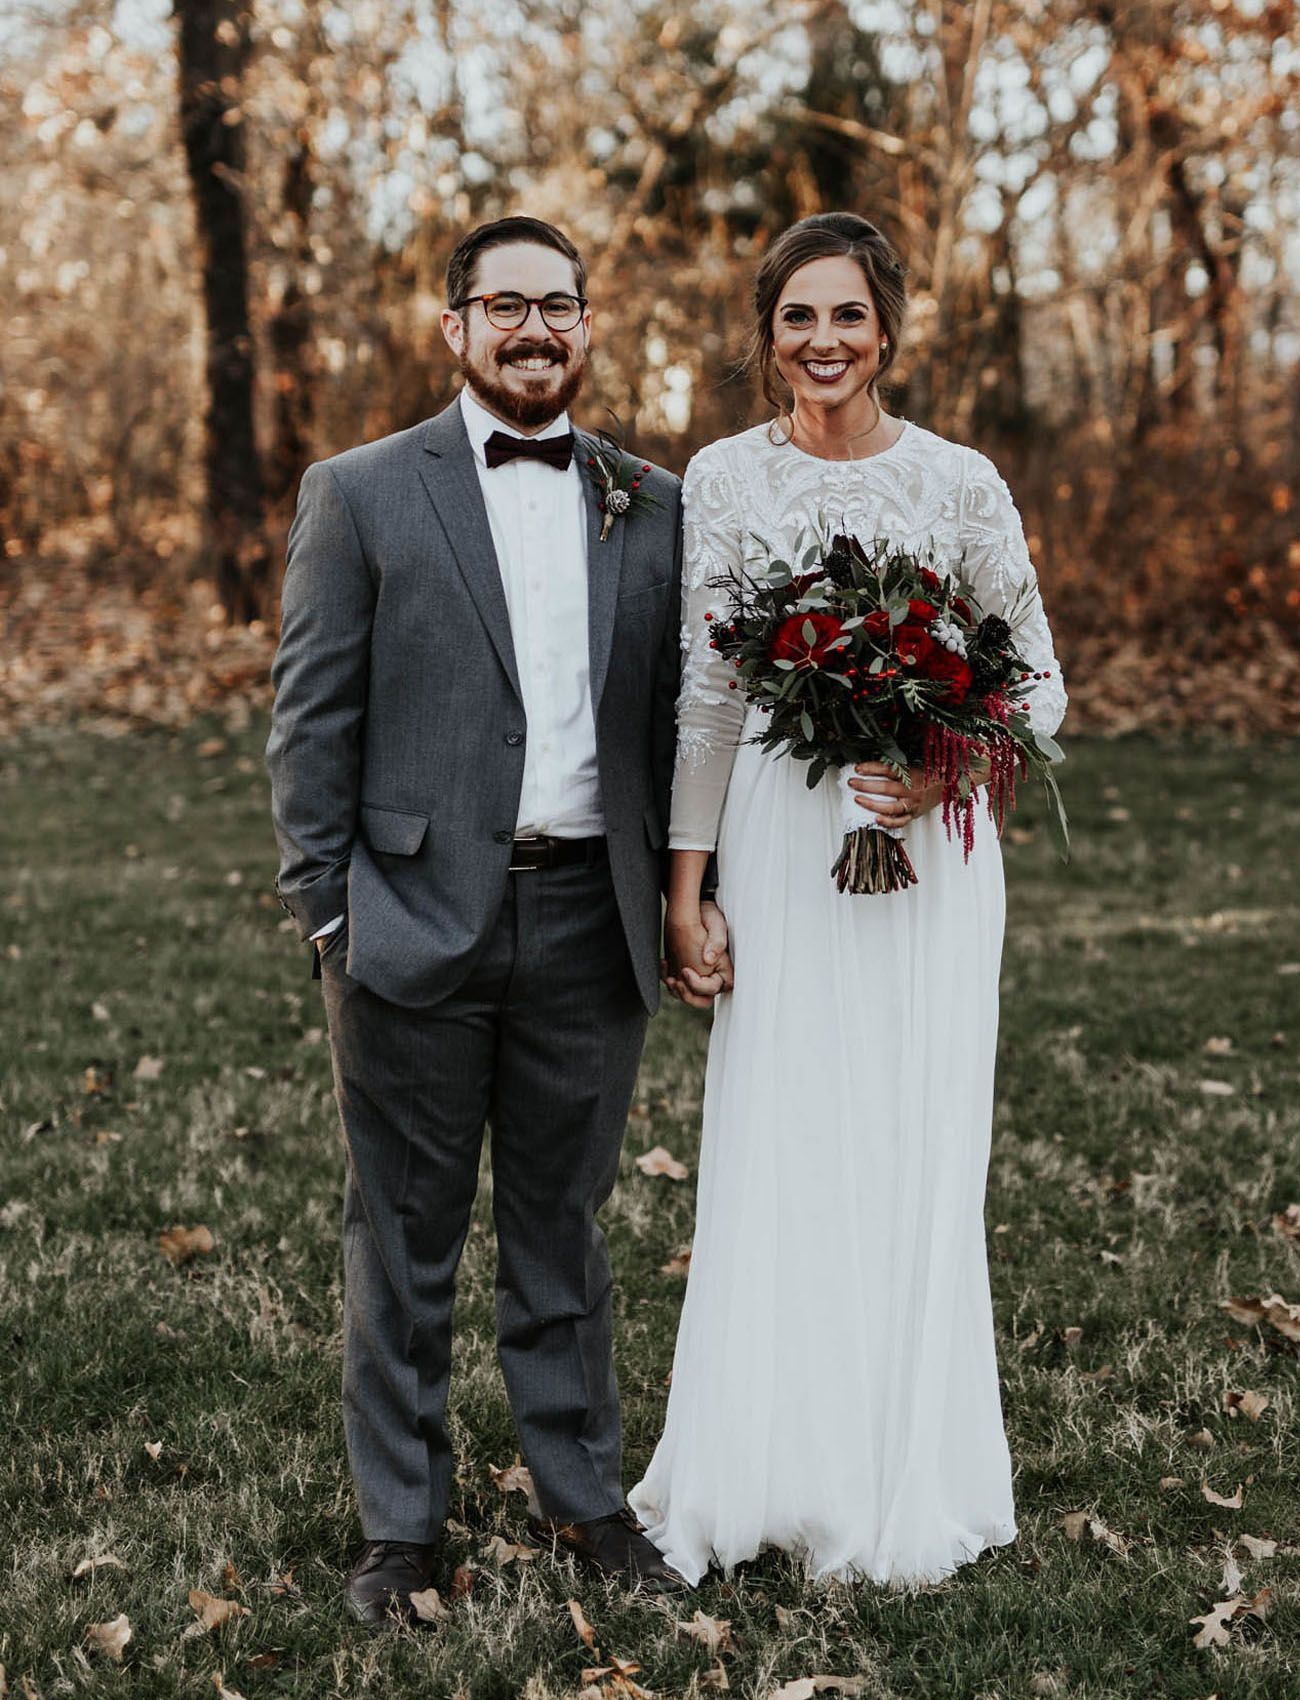 The Bridesmaids Wore Burgundy In This Laid Back Winter Wedding